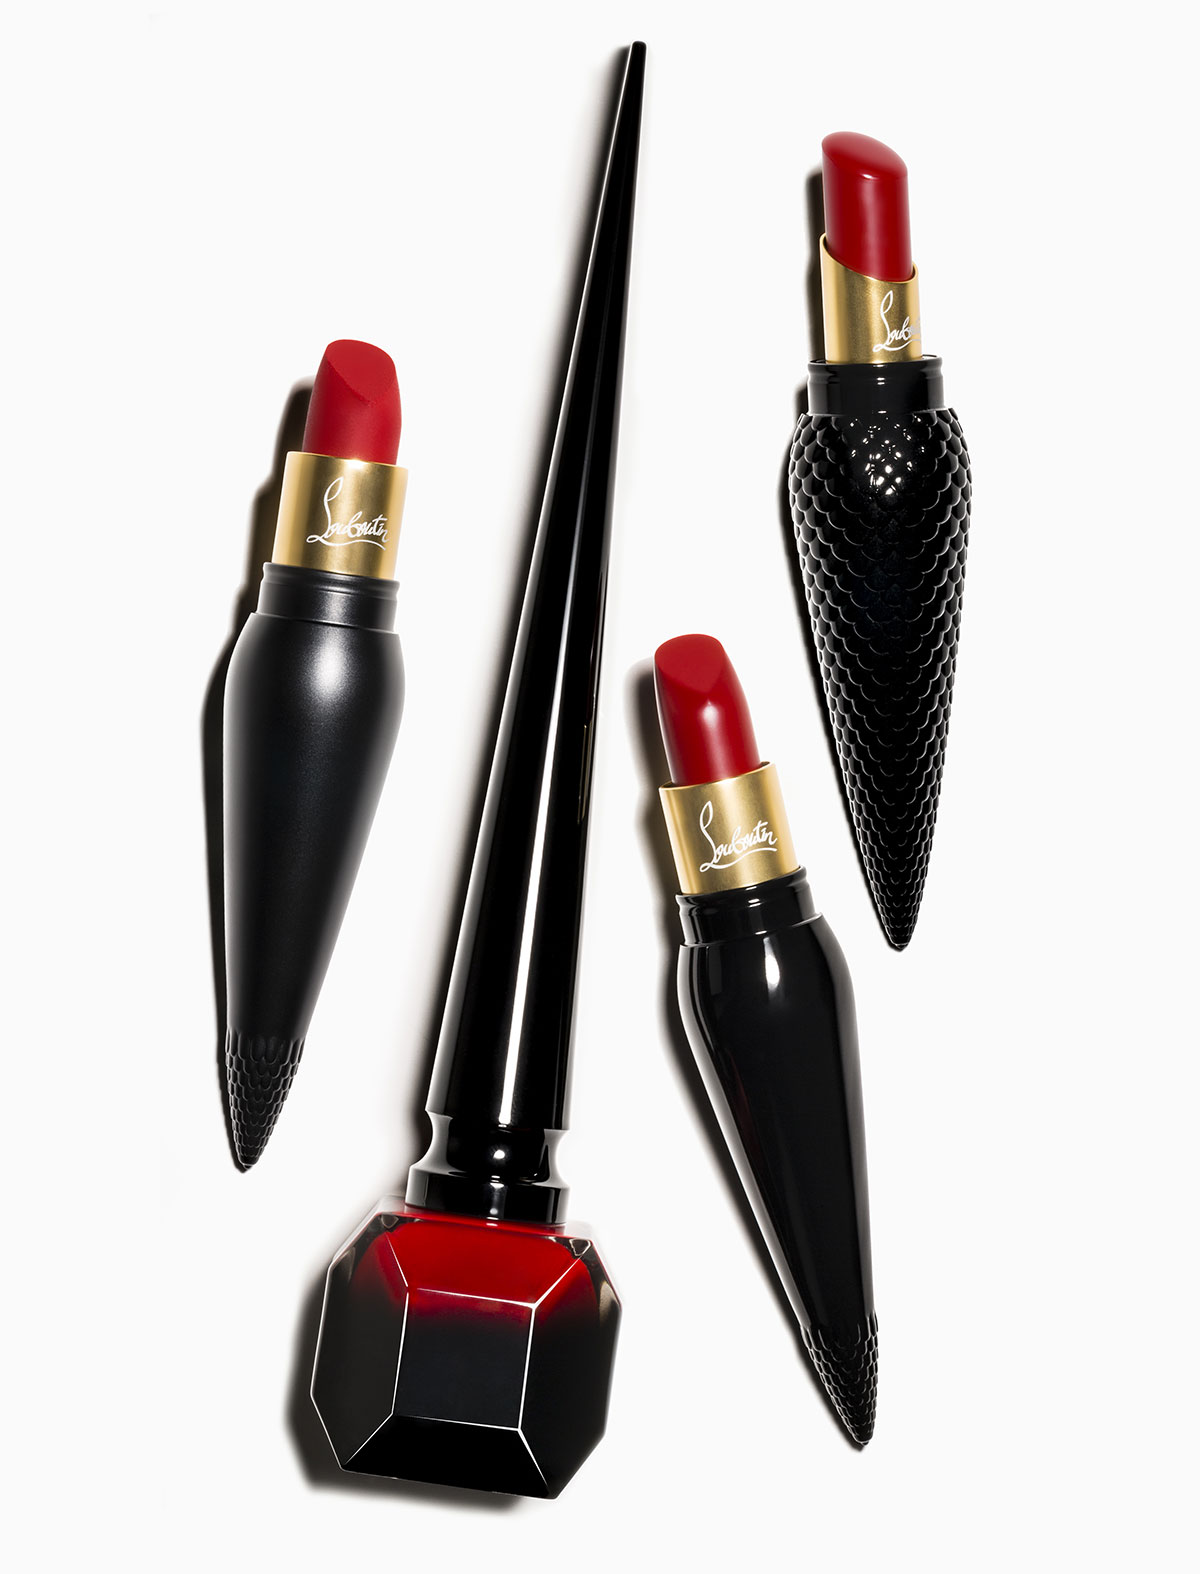 beauty, Beauty & Care, Christian Louboutin, lipstick, saks, louboutin, news, culture and trend